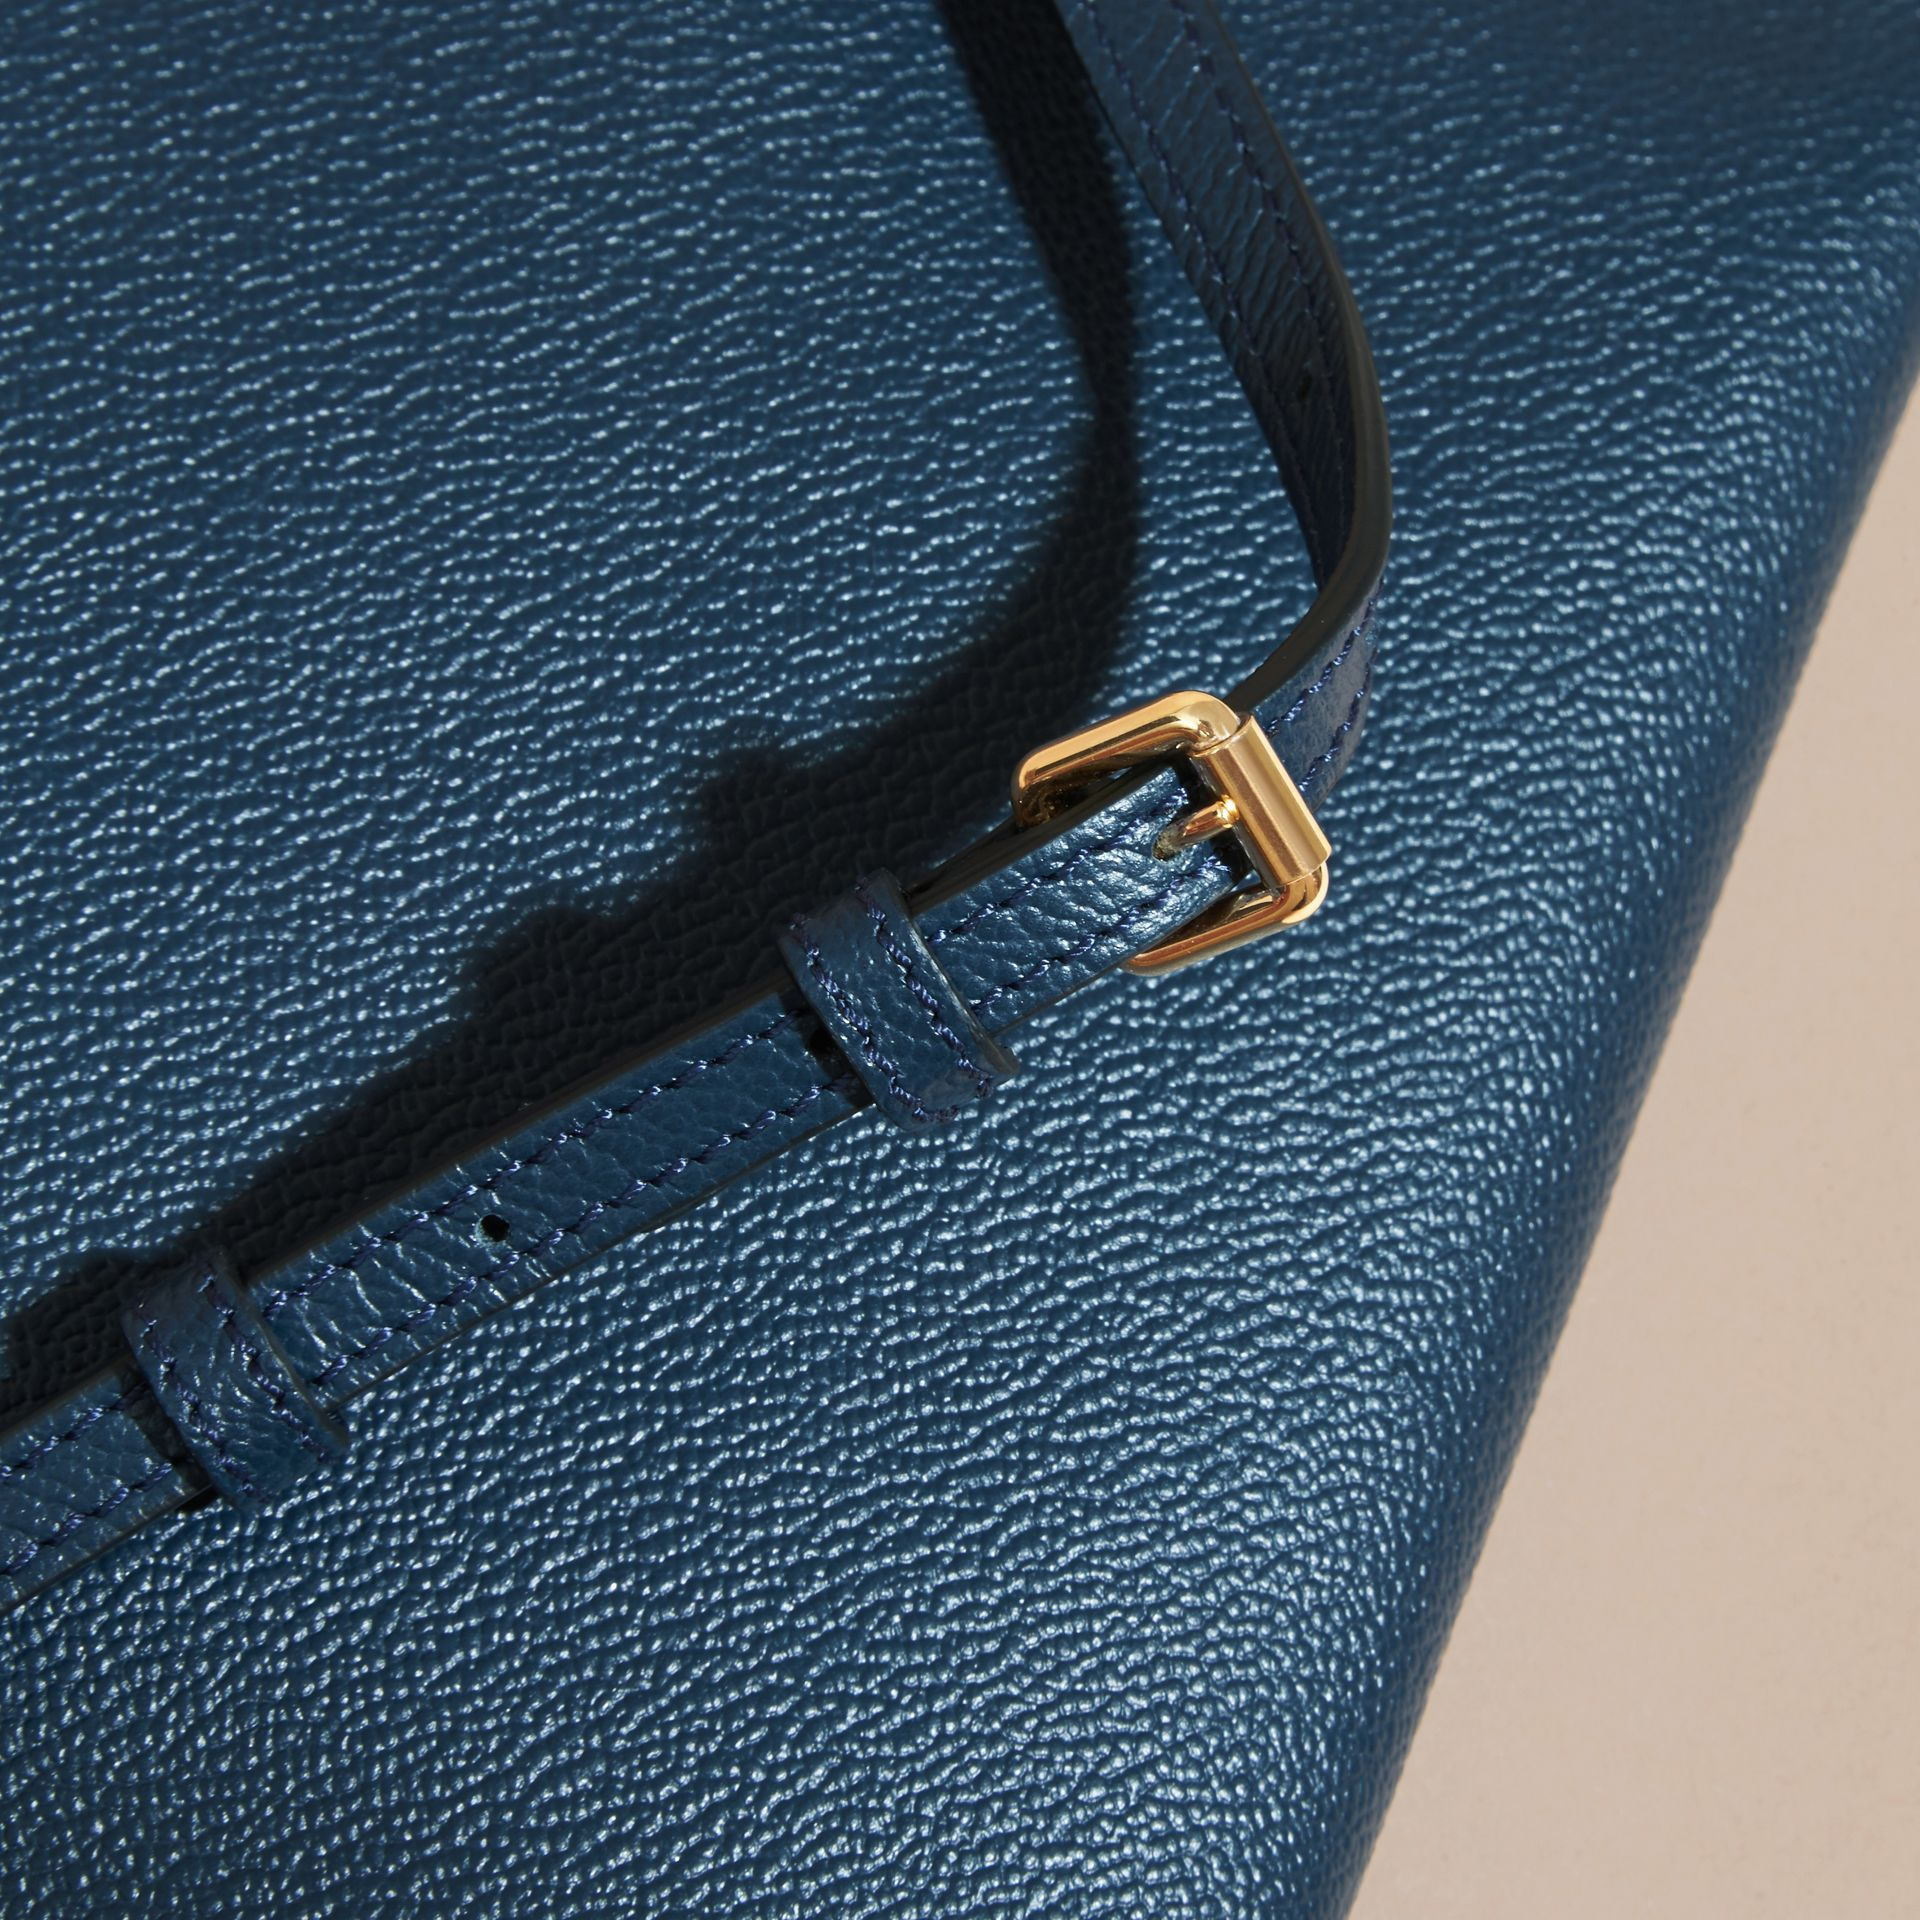 Leather Clutch Bag with Check Lining in Blue Carbon - Women | Burberry - gallery image 7